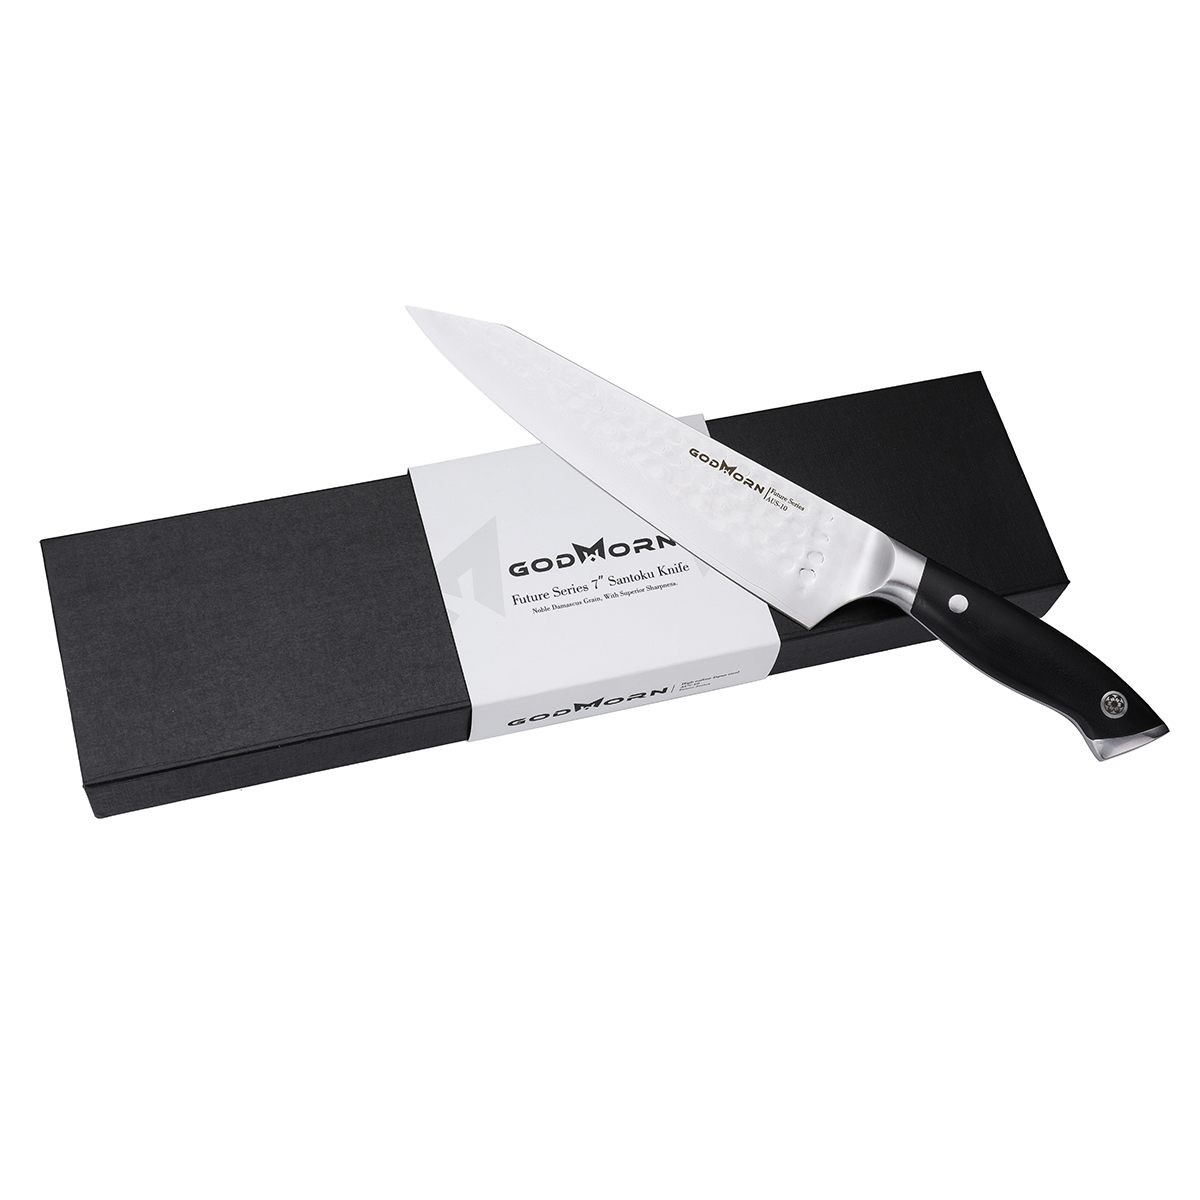 Godmorn Chef Knife 8 Inch AUS-10V Japanese Stainless Steel Professional Kitchen Knife with G10 Handle